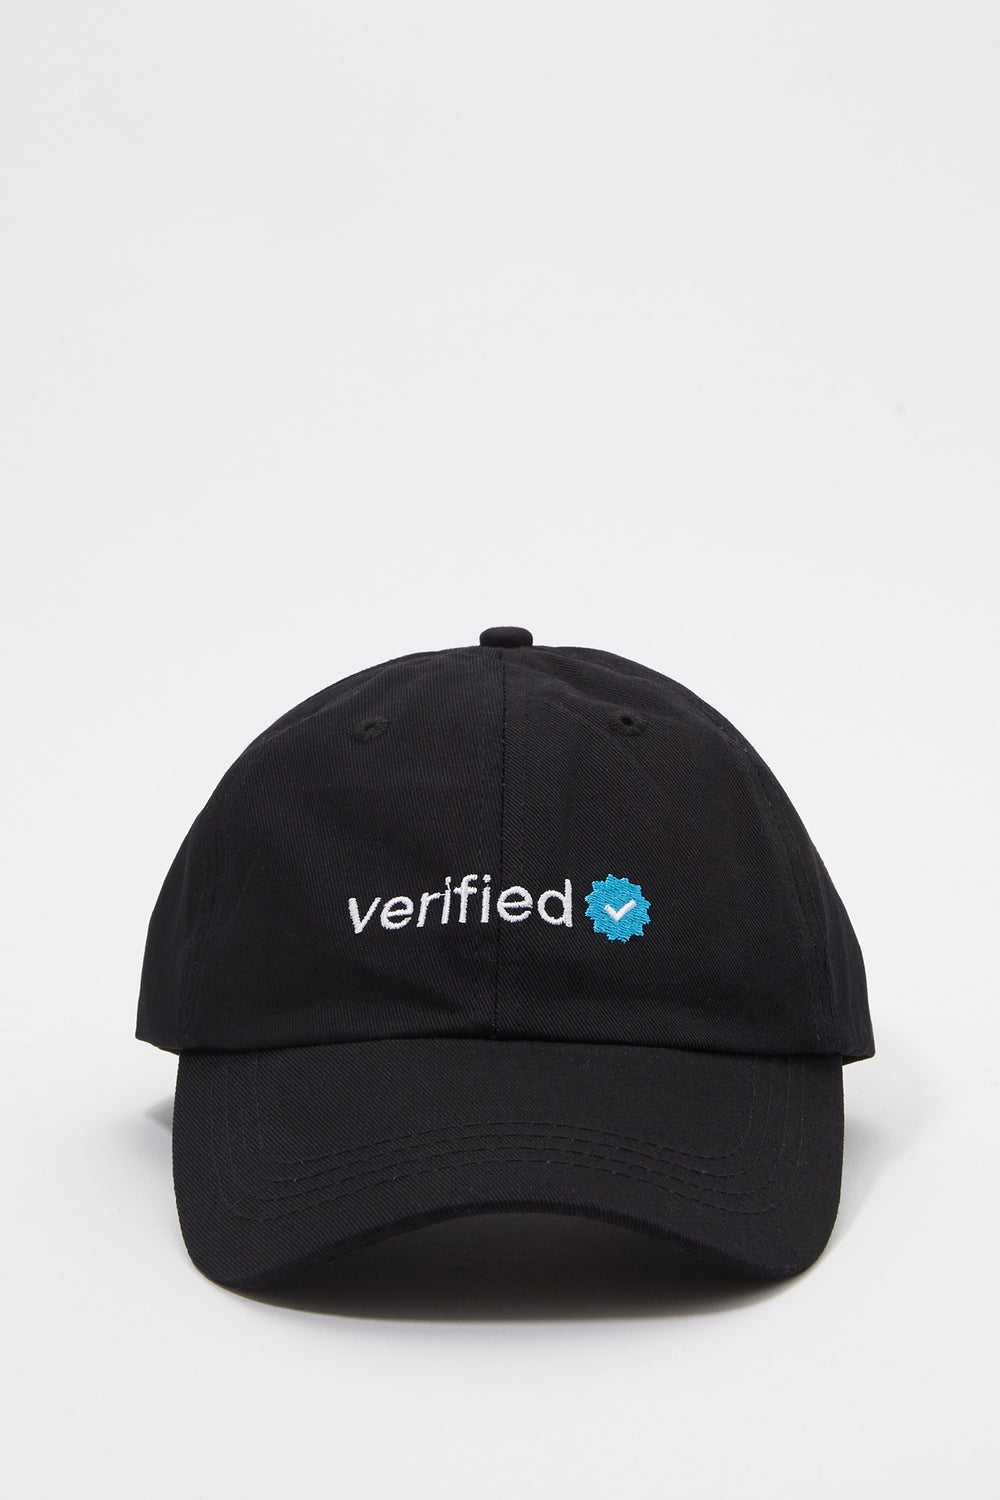 Verified Baseball Hat Black